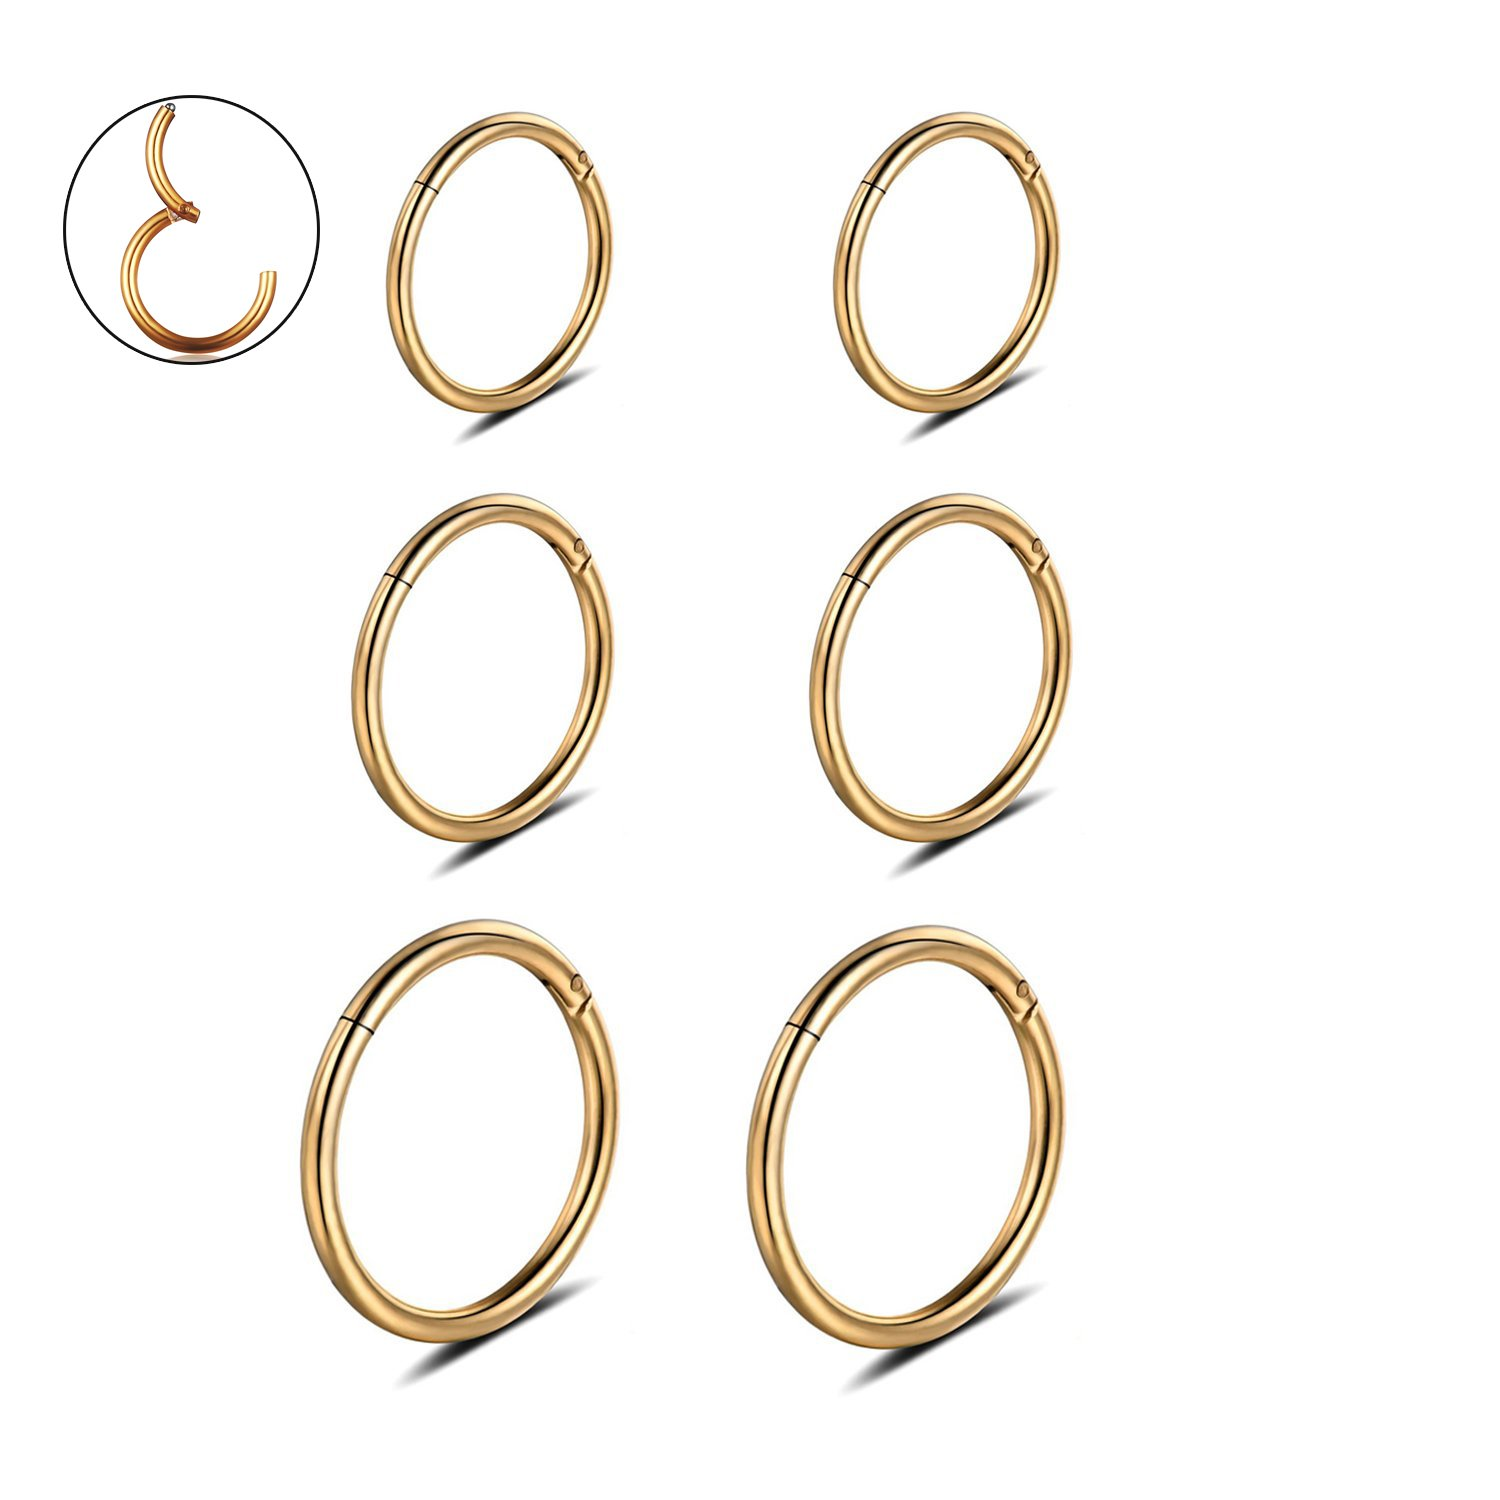 16G Stainless Steel 3 Pair Sleeper Earrings Clicker Nose Lip Ring Body Piercing for Mens Womens by Monily